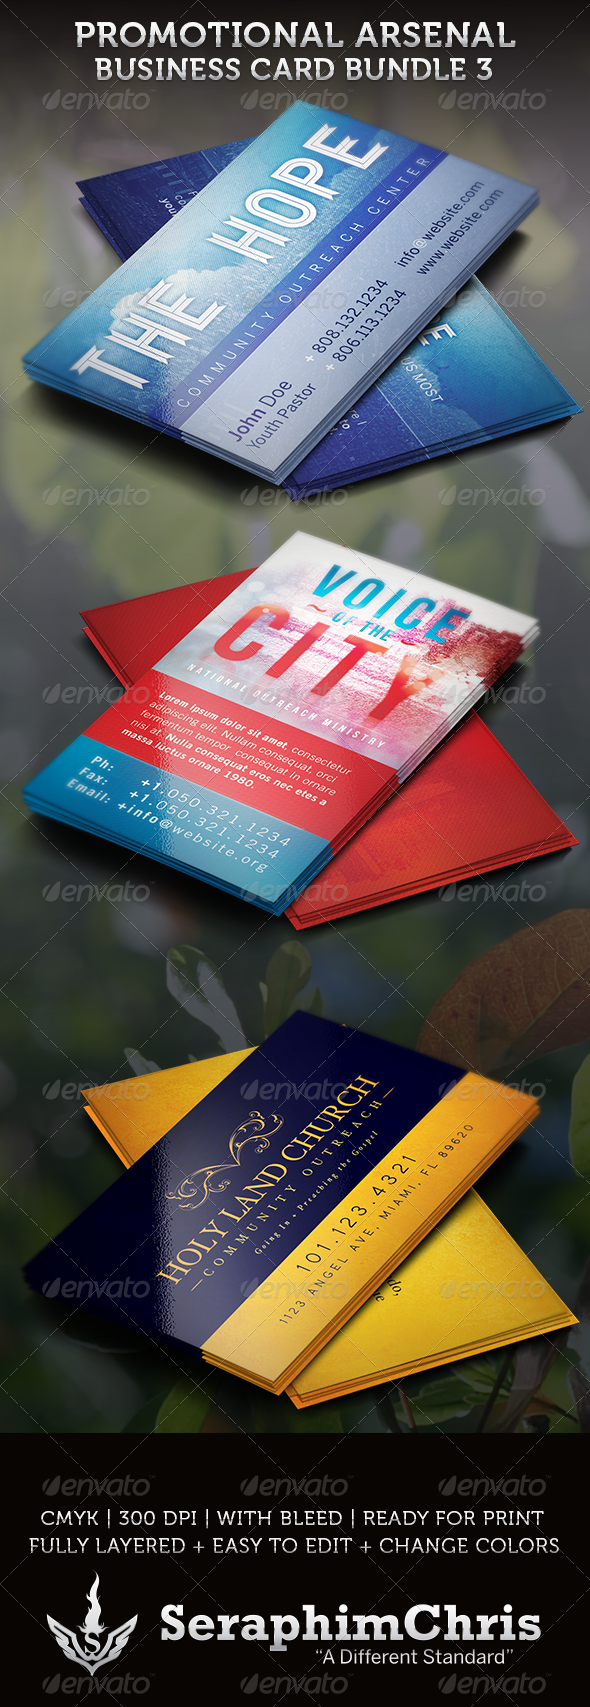 GraphicRiver Promotional Arsenal Business Card Bundle 3 3630686